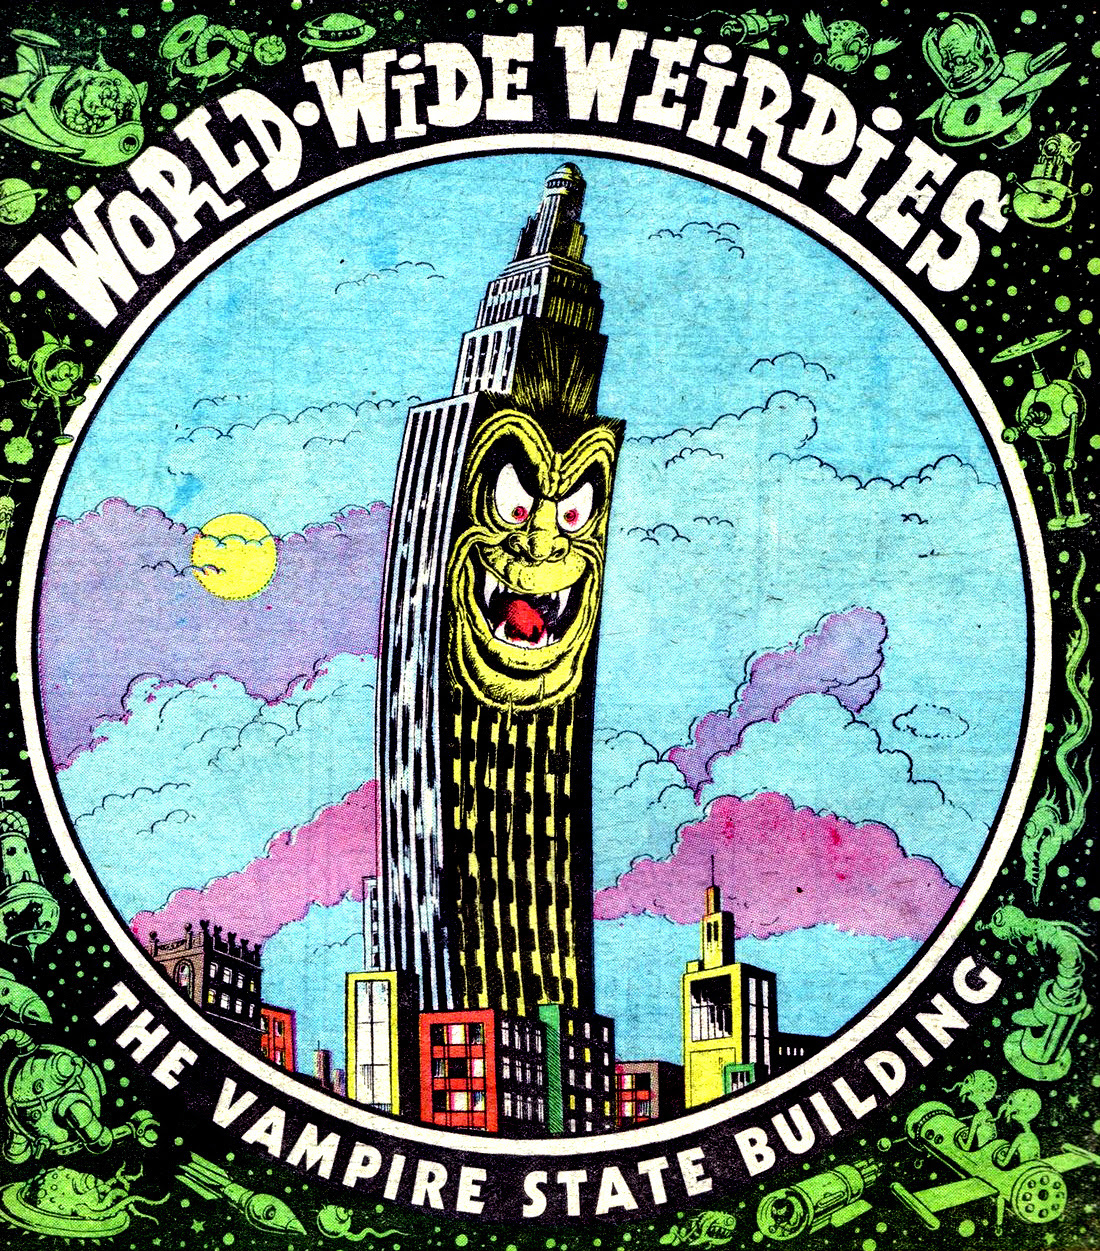 Ken Reid - World Wide Weirdies 08